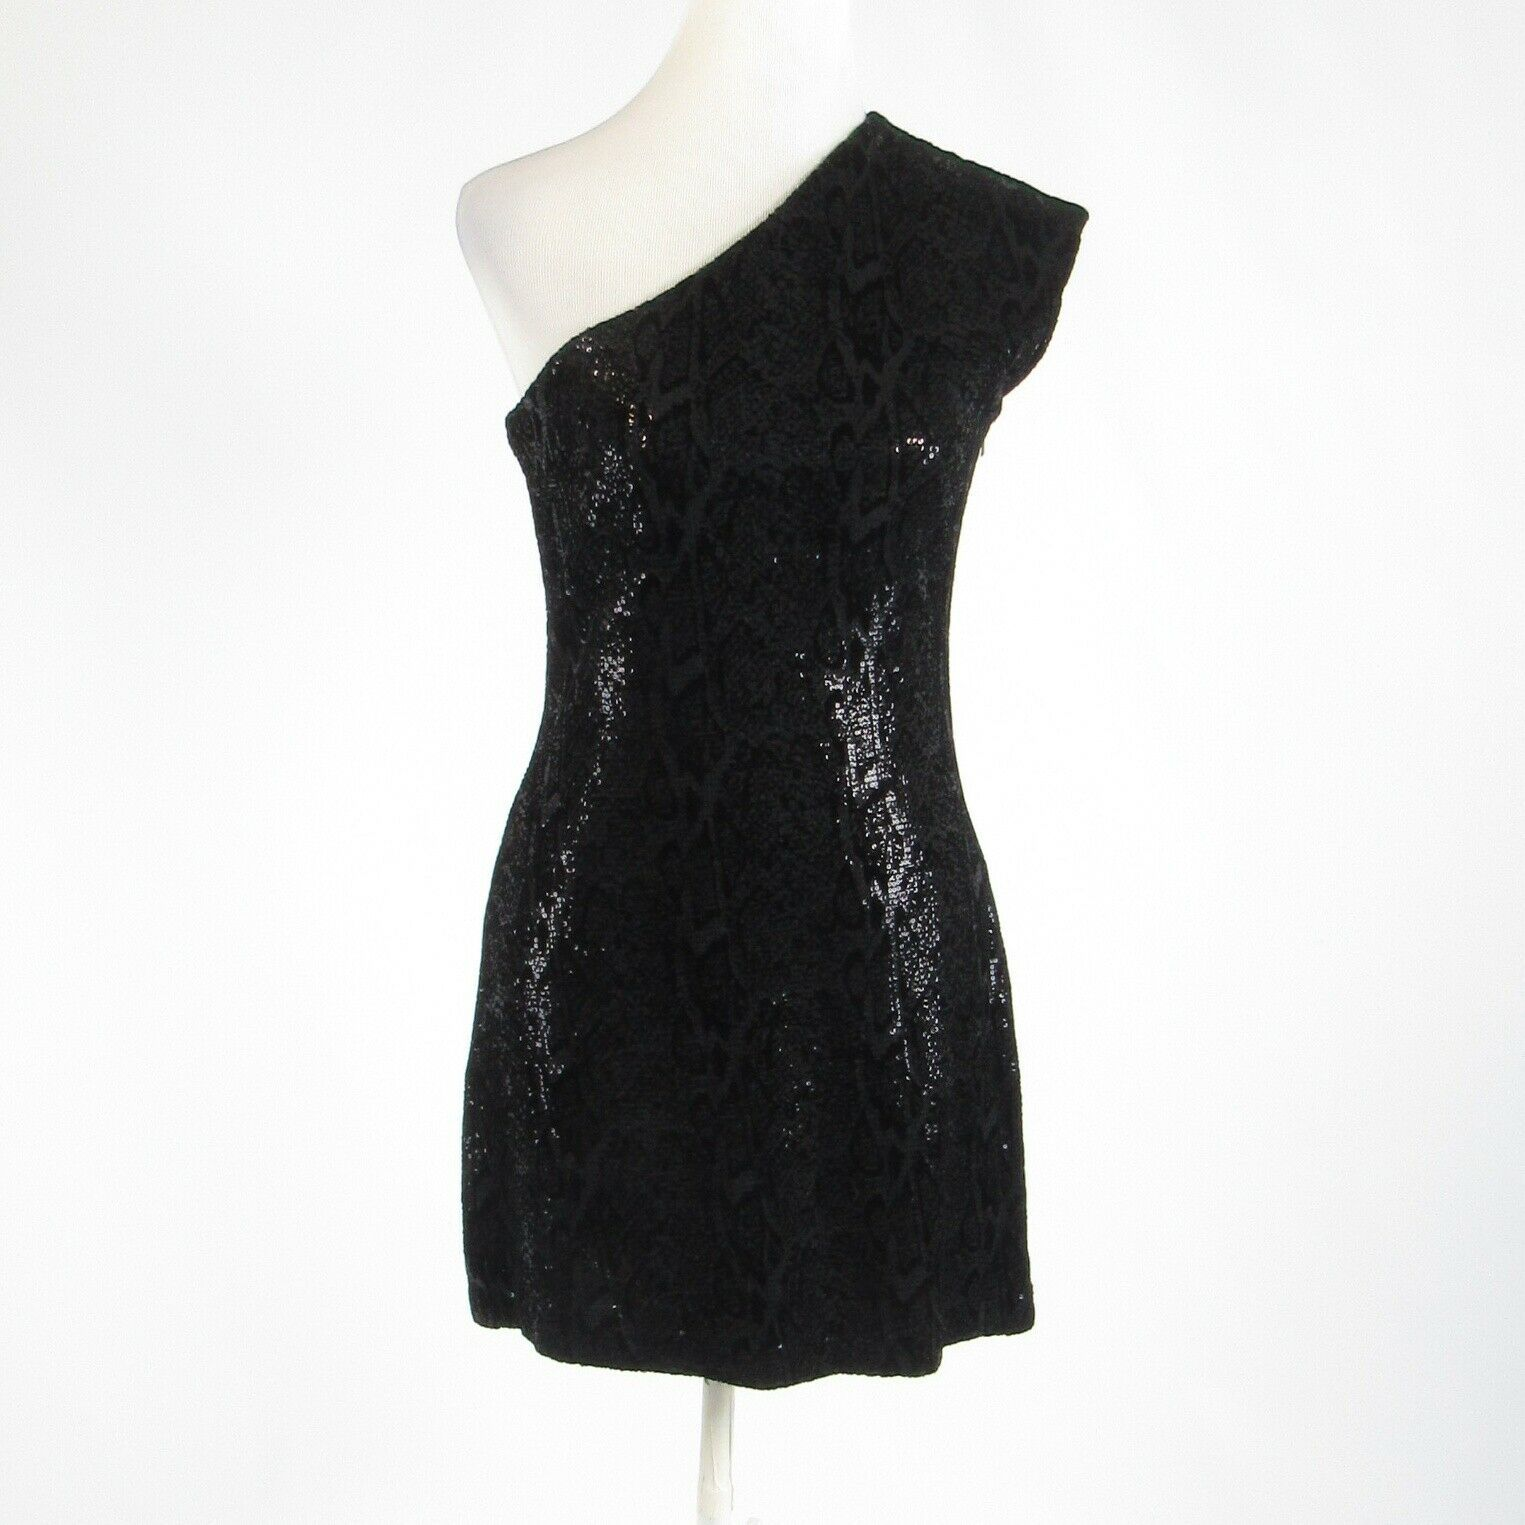 Primary image for Black gray snake HALSTON HERITAGE sequin sleeveless sheath dress 8